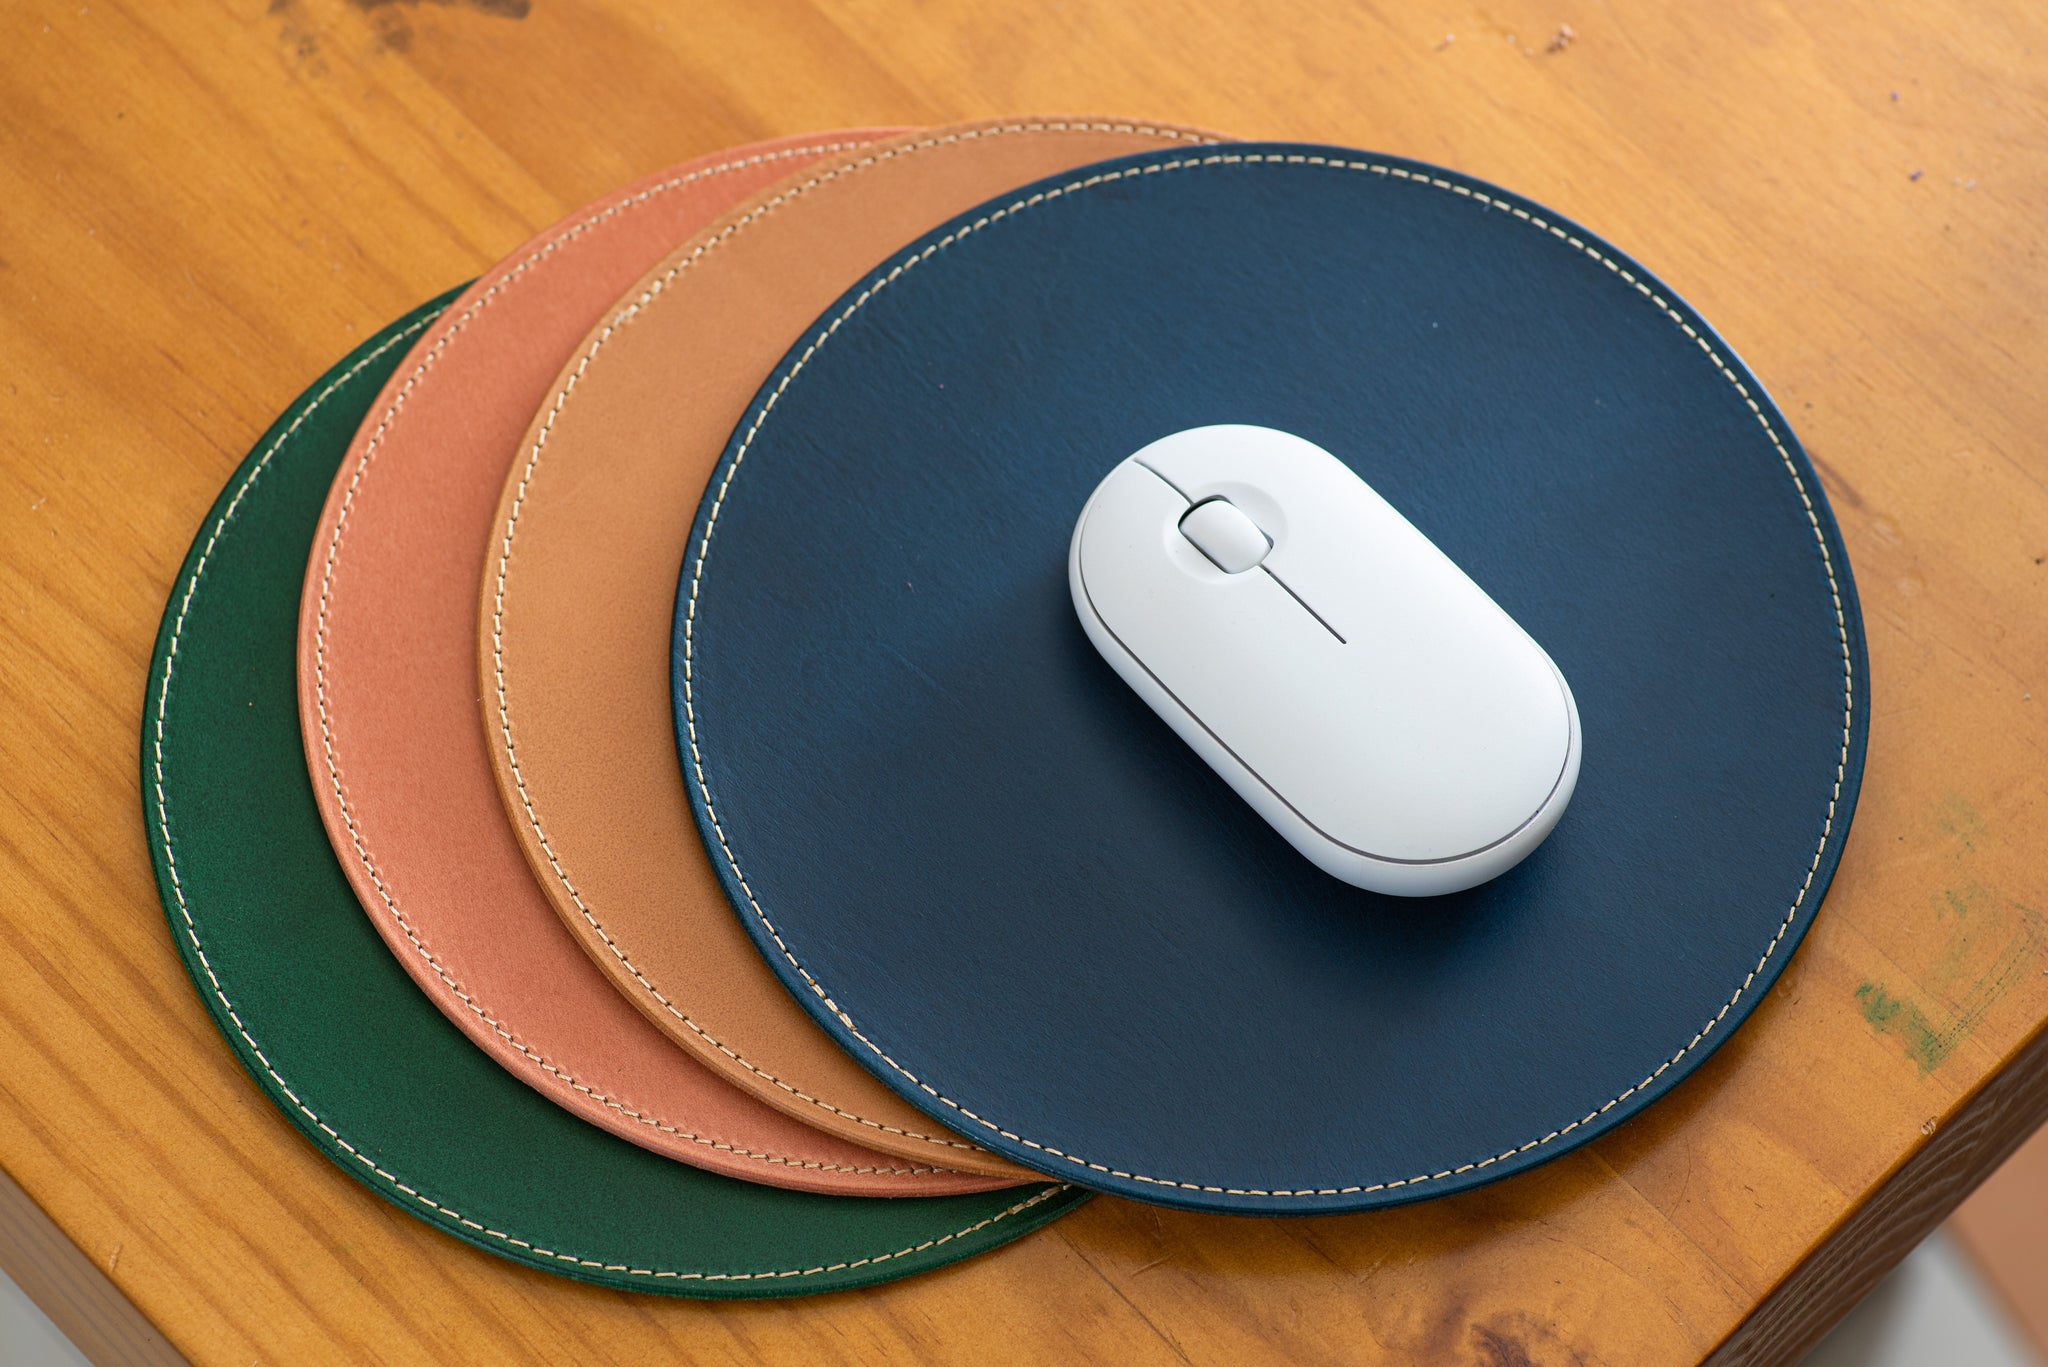 12 COLORS - Stitched Round Buttero Leather Mouse Pad